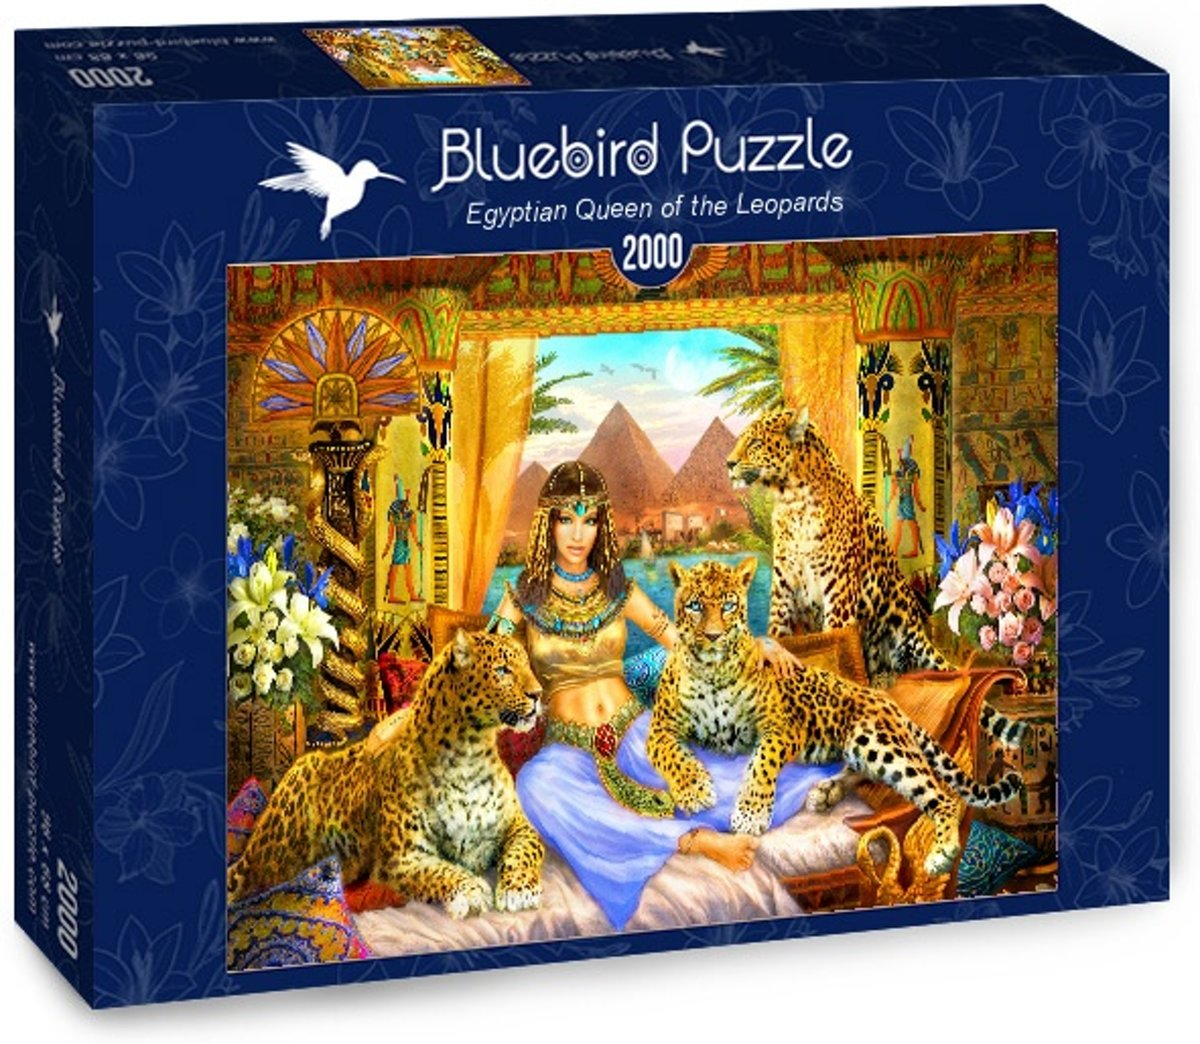 Egyptian Queen of the Leopards legpuzzel 2000 stukjes